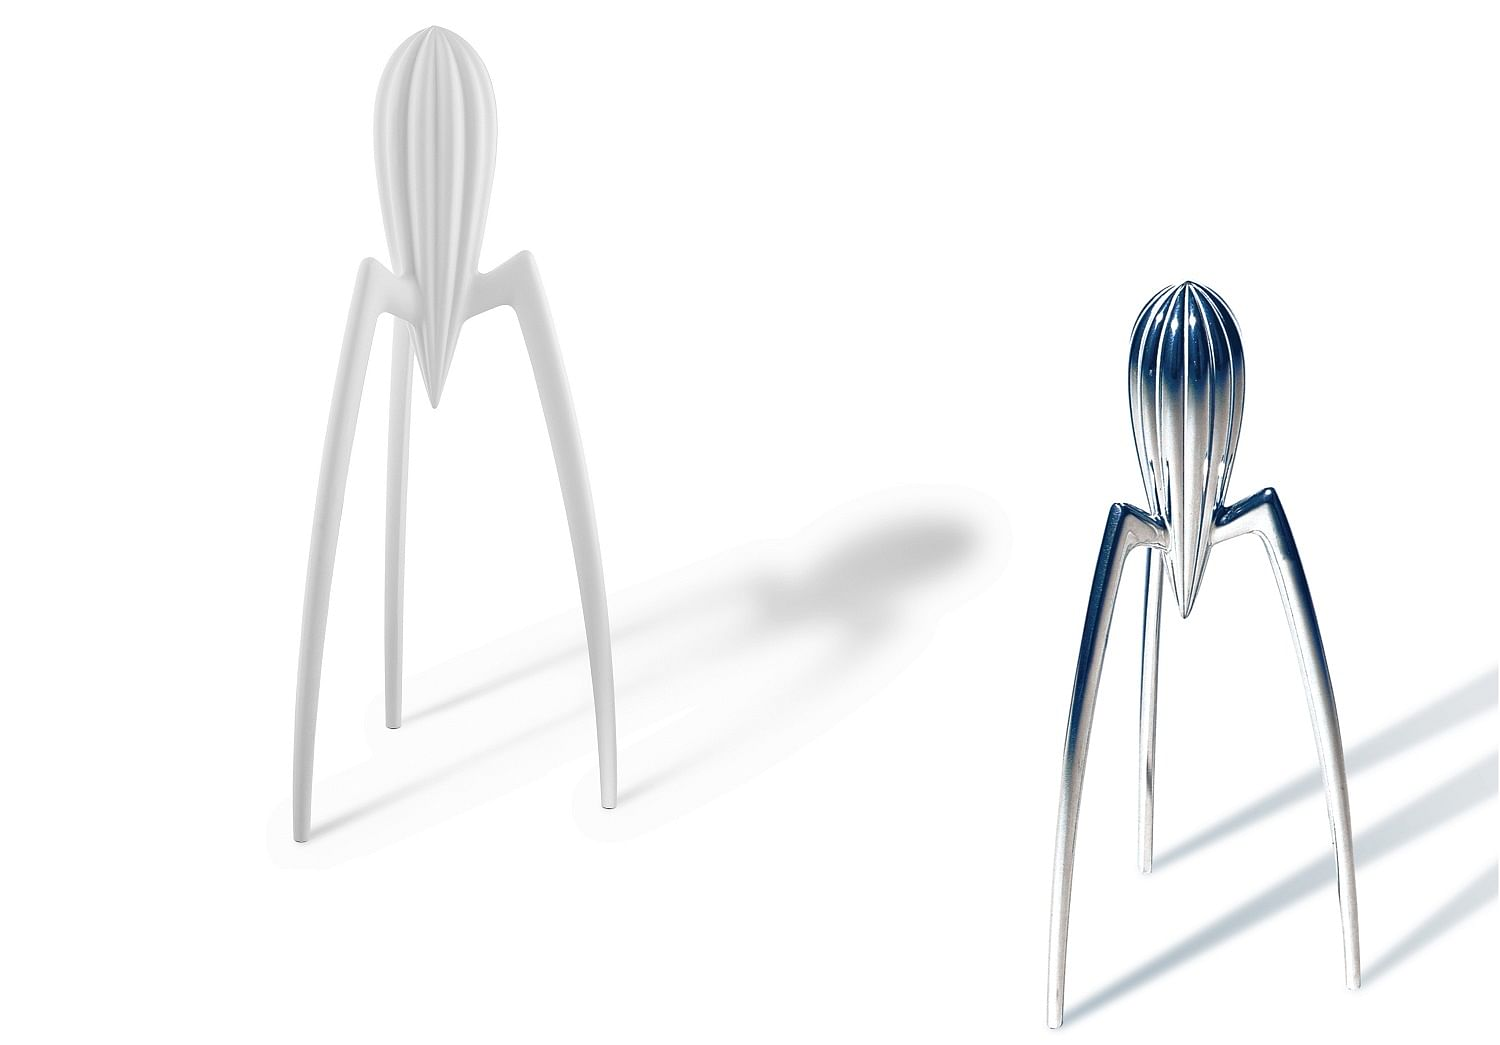 3 Fun Facts About The Juicy Salif By Philippe Starck